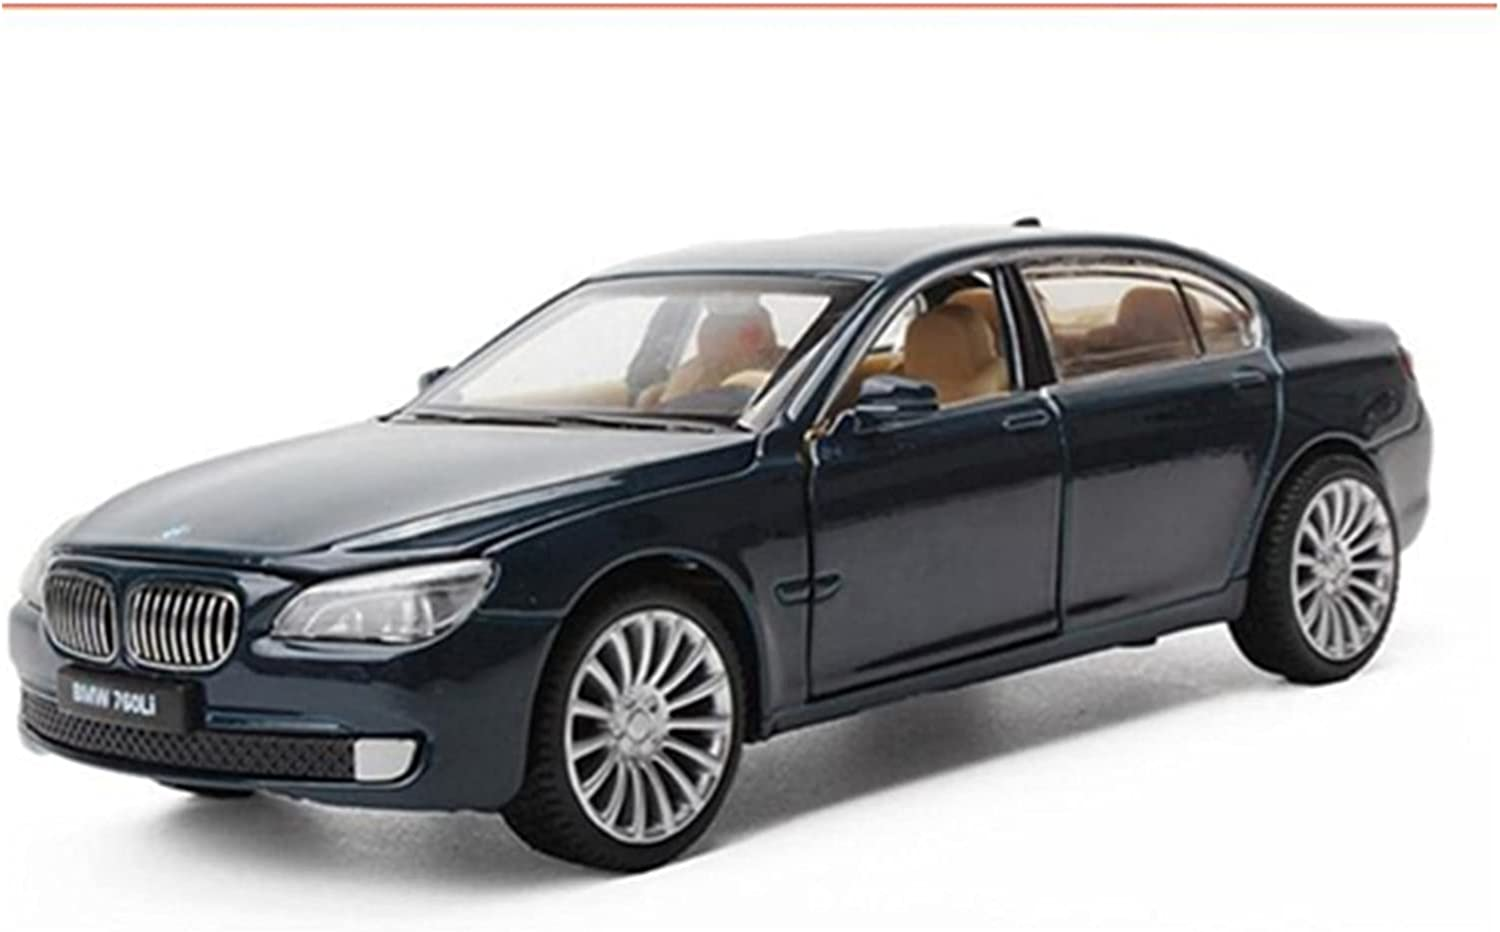 SRJCWO Car Toy Collectibles for Simulation 1:32 Allo Now free shipping 760Li Coupe Max 81% OFF